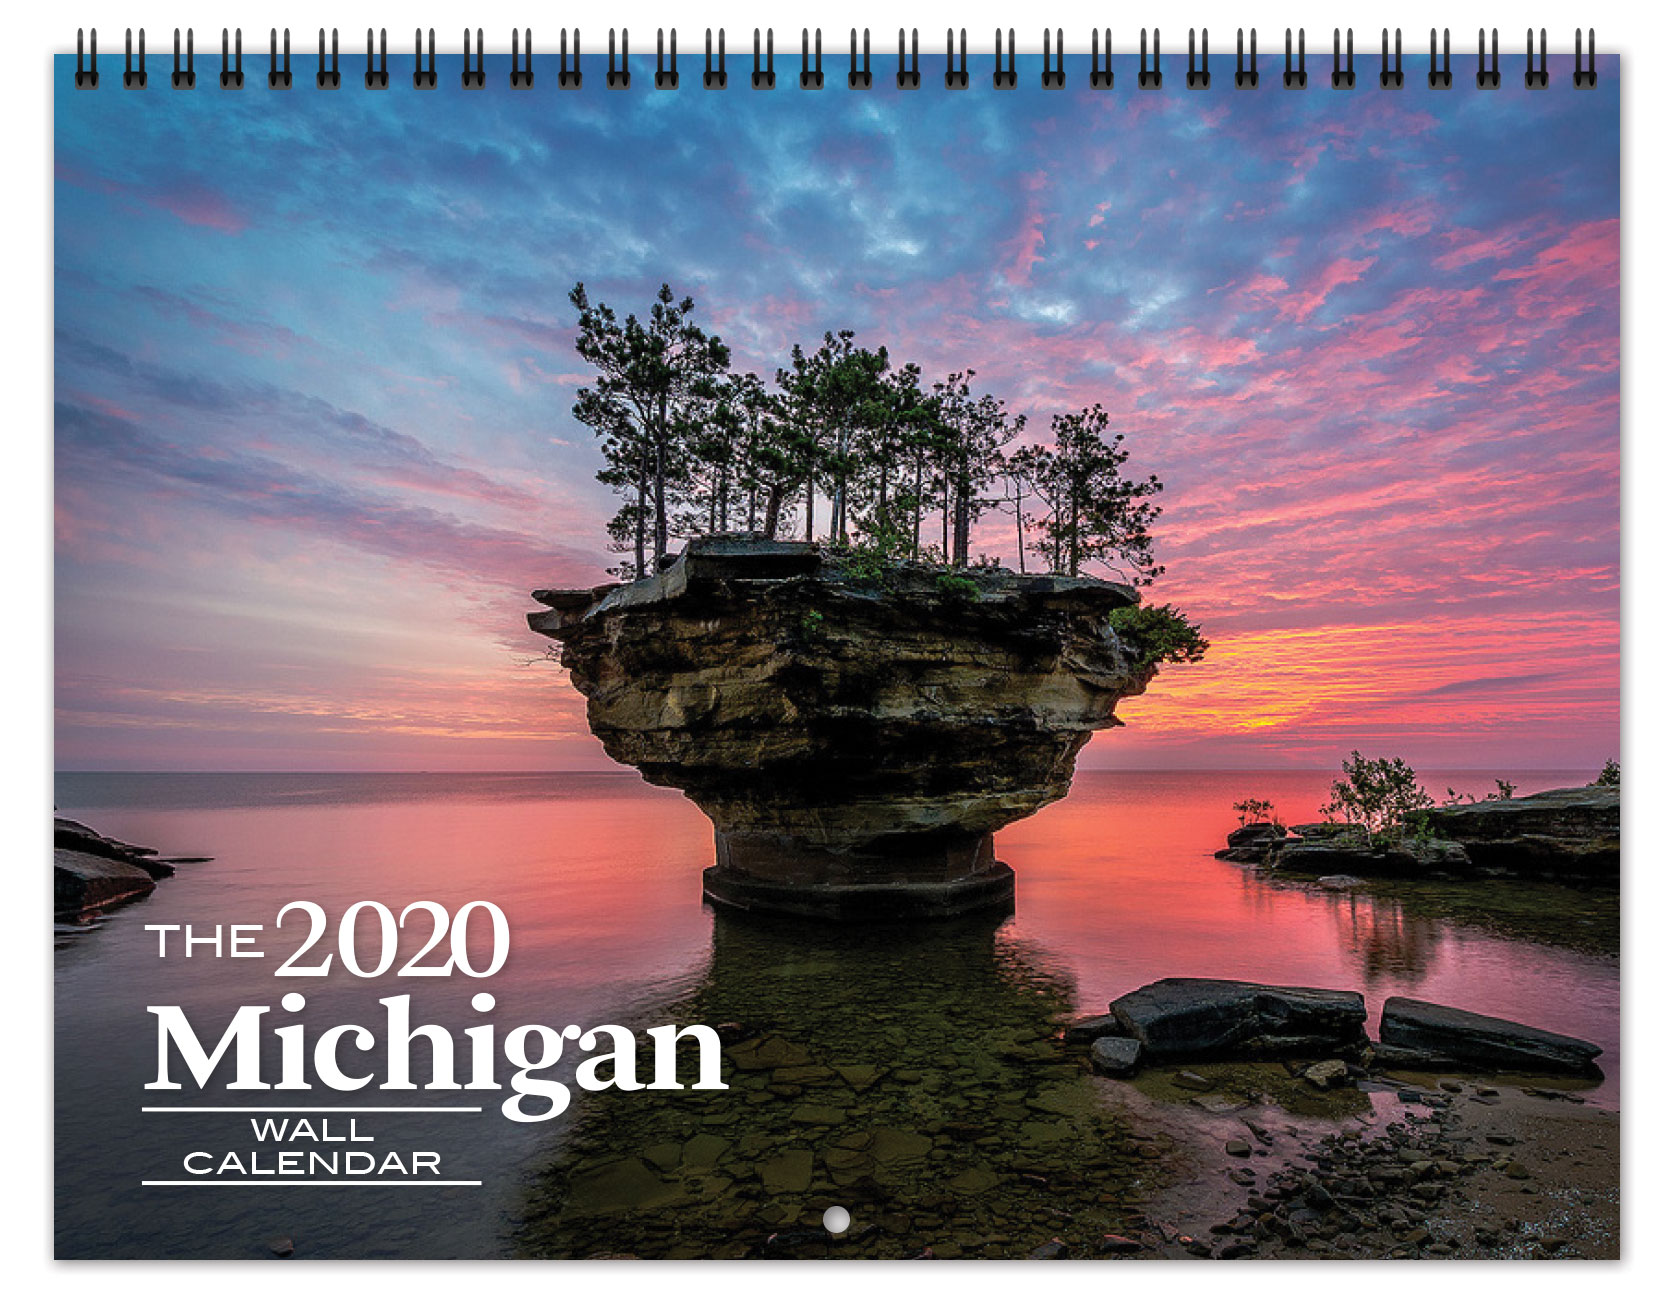 Michigan Calendar 2020 2020 Michigan Calendar | Farley Calendar Company